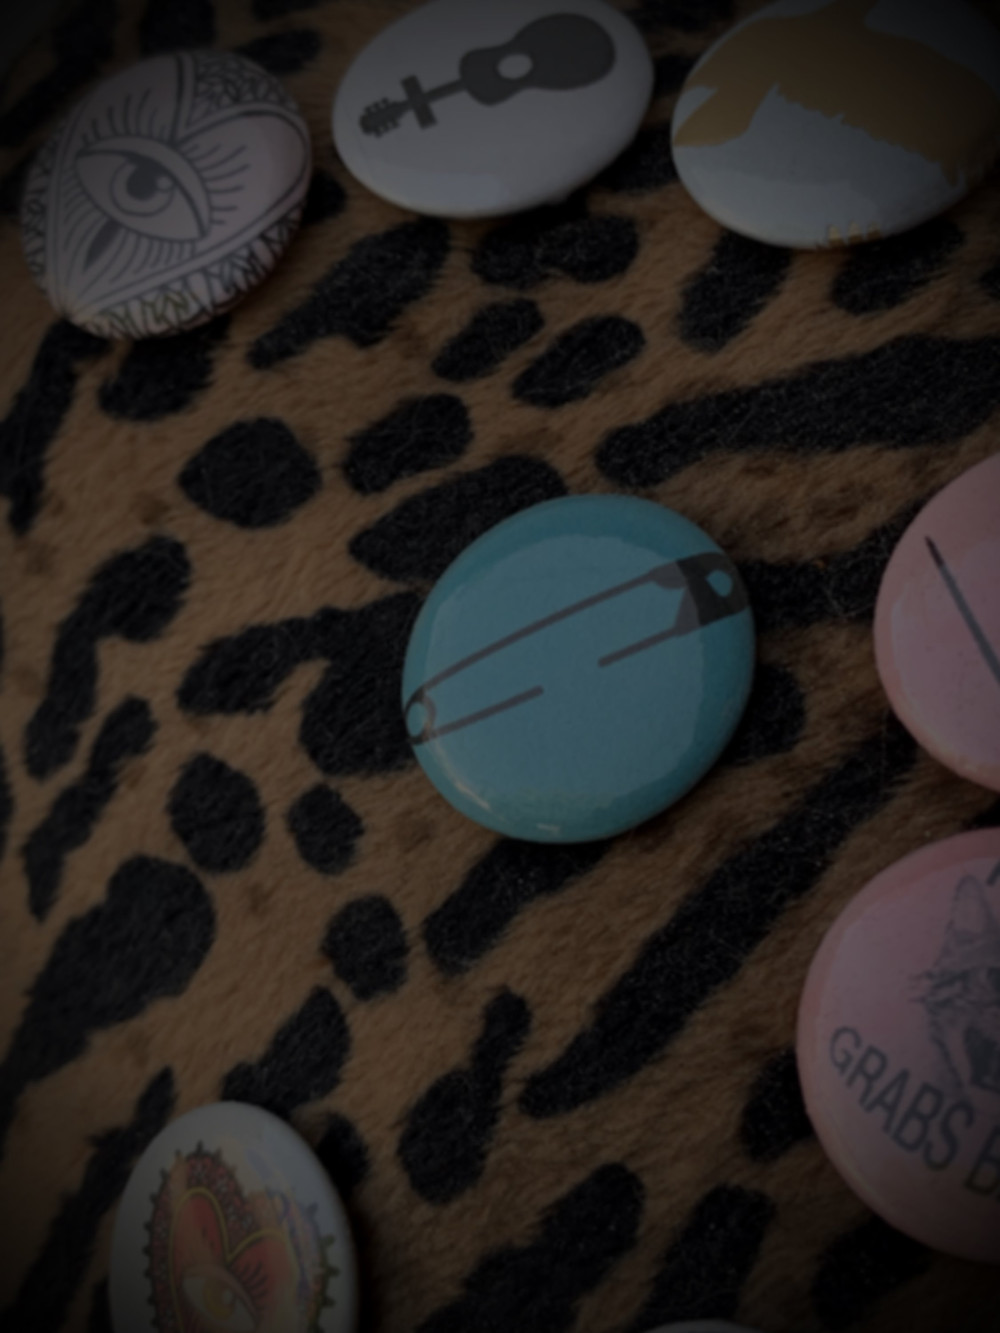 Fashion buttons made by Mia X Marks the Spot